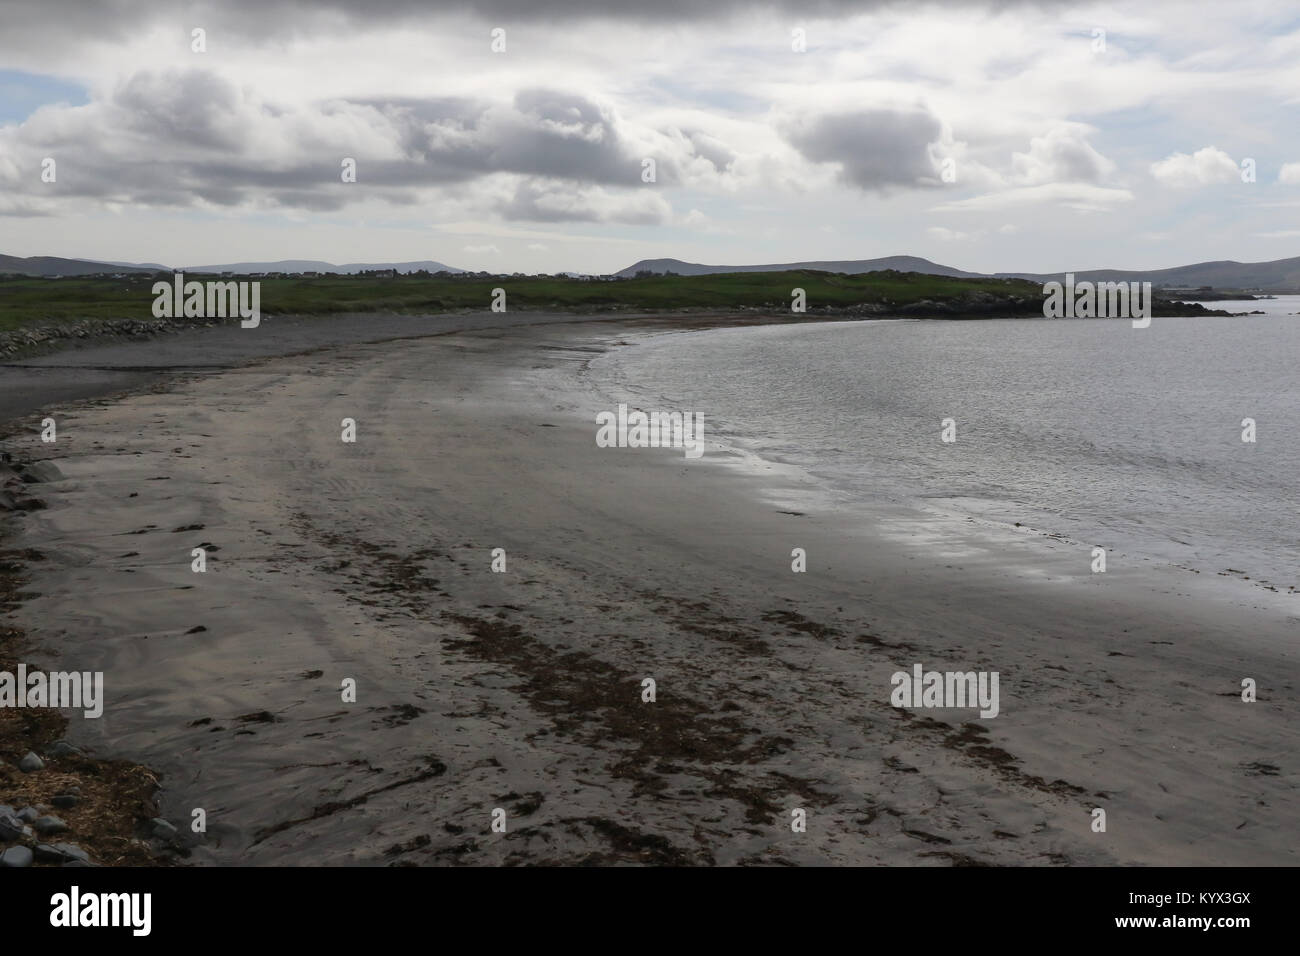 White Strand beach, County Kerry. A blue flag beach near Cahirsiveen in County Kerry. - Stock Image